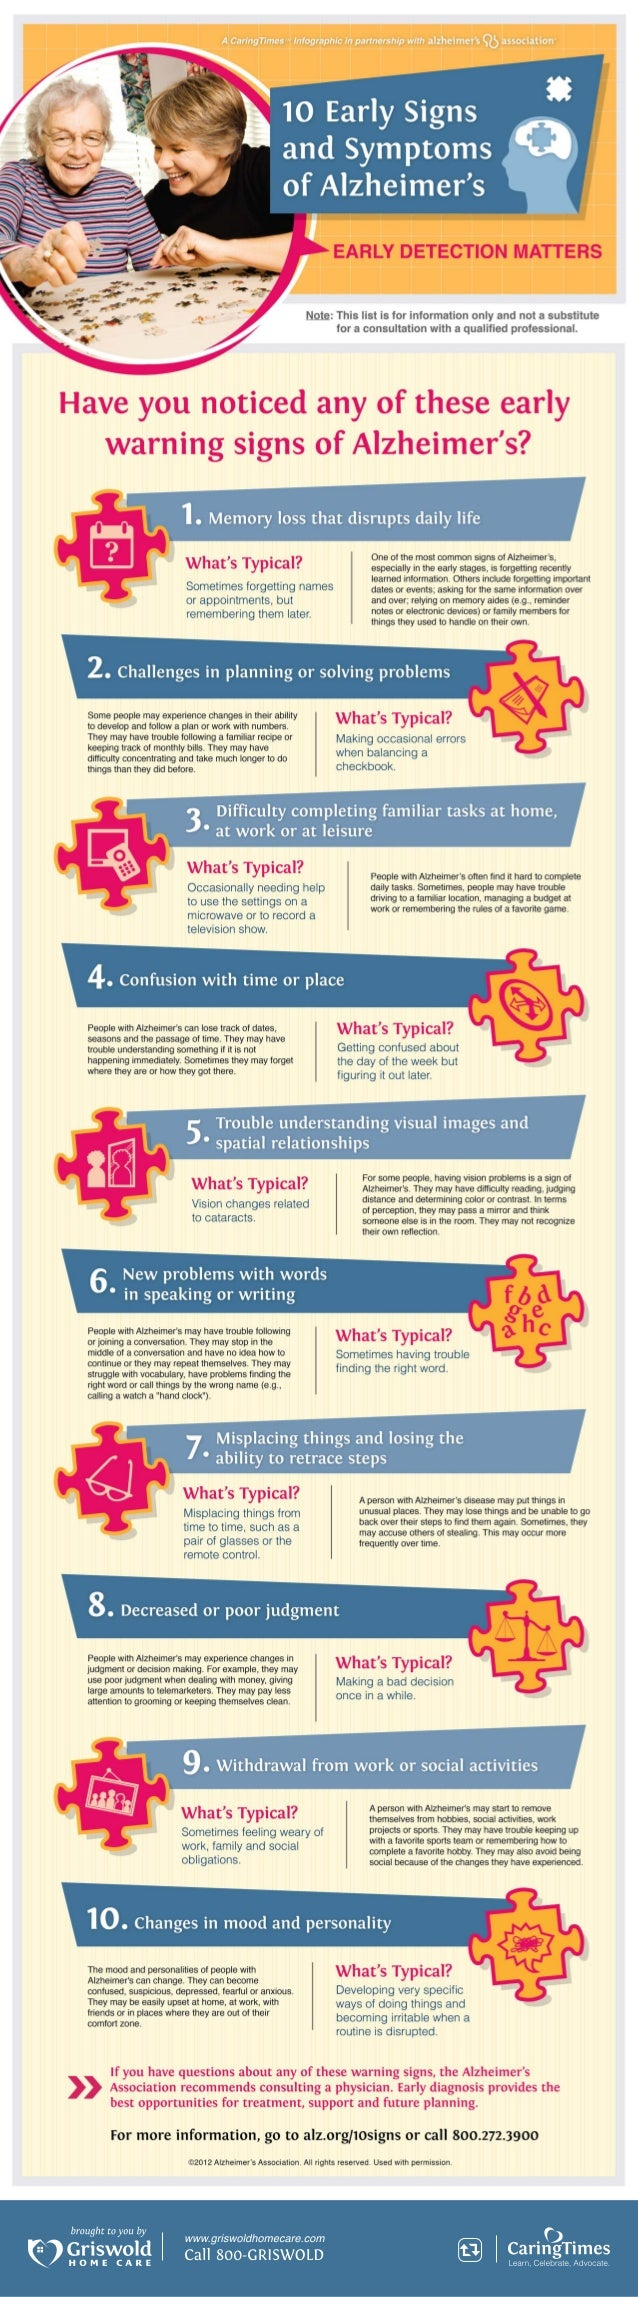 [INFOGRAPHIC] 10 Early Signs and Symptoms of Alzheimer's